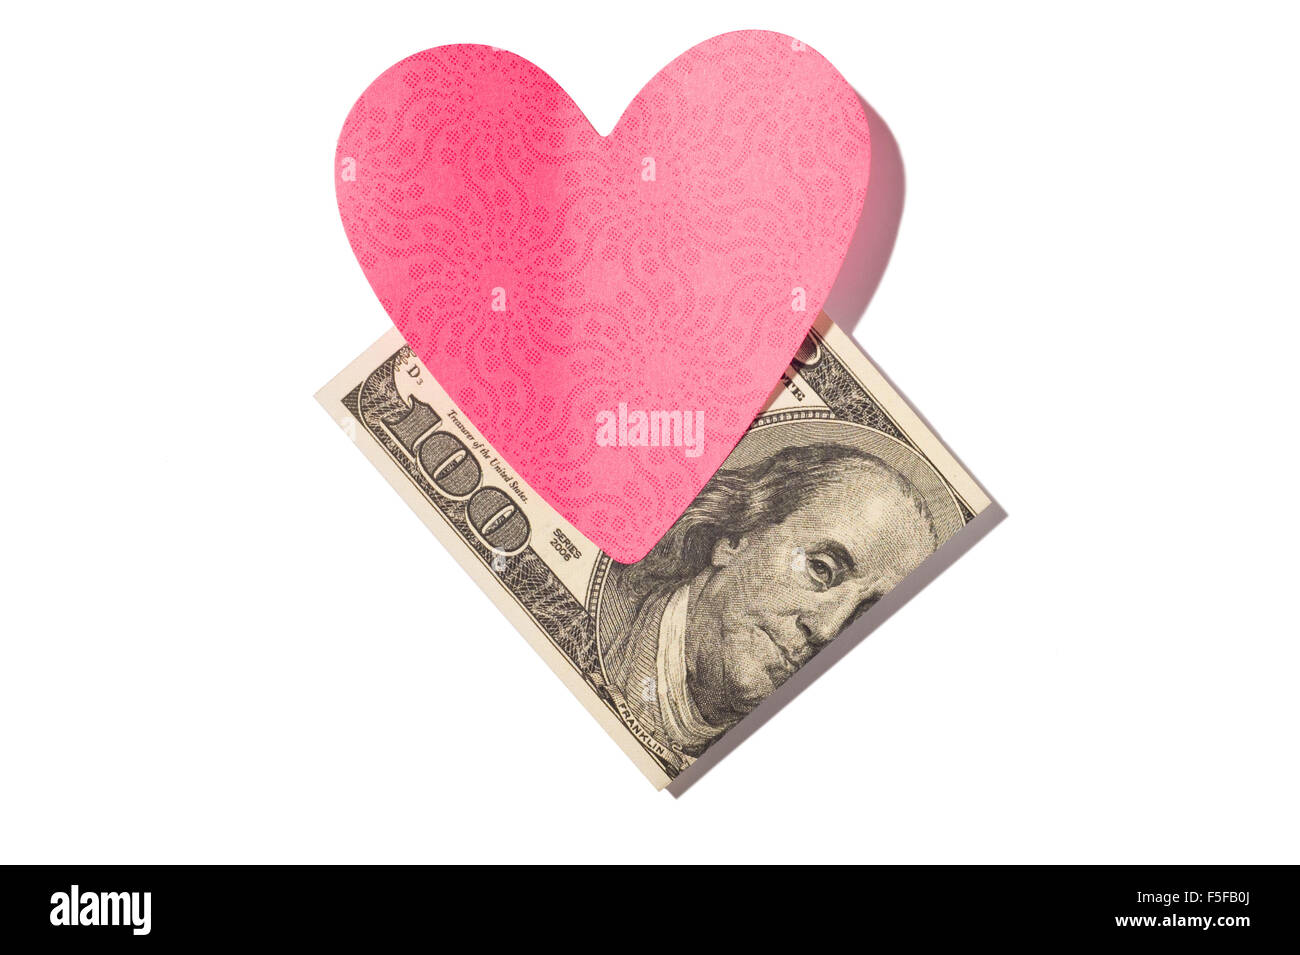 Folded One Hundred Dollar Bill With Heart-Shaped Postit Note - Stock Image